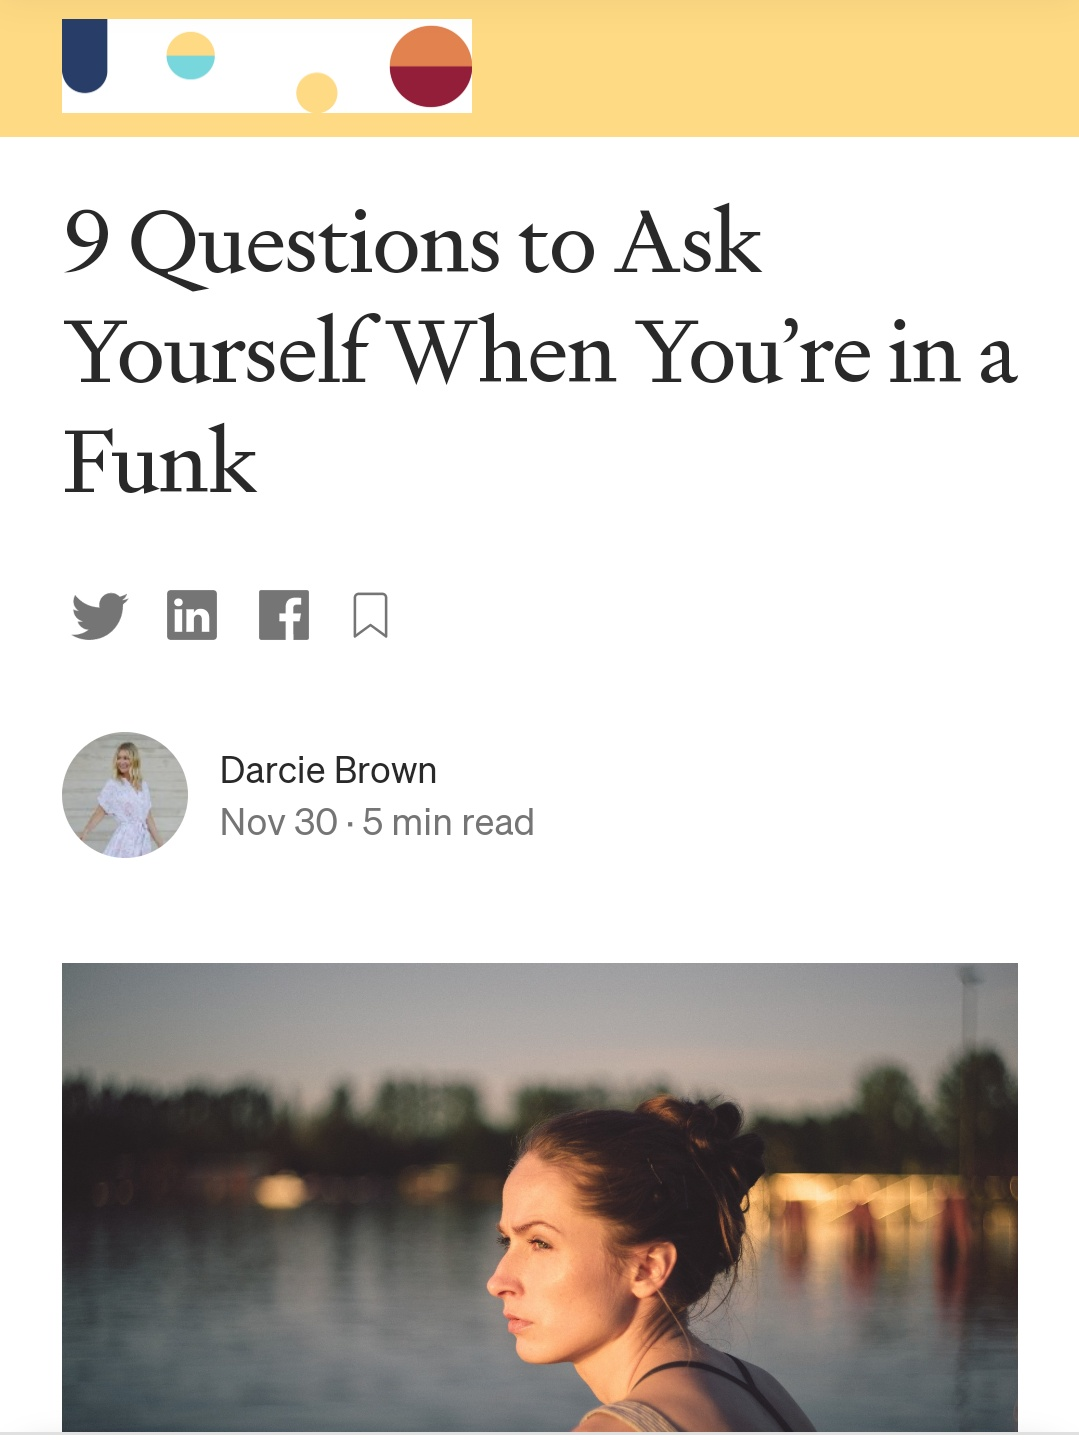 9 Questions to Ask Yourself When You're In a Funk - Darcie Brown, LMFT on Curio